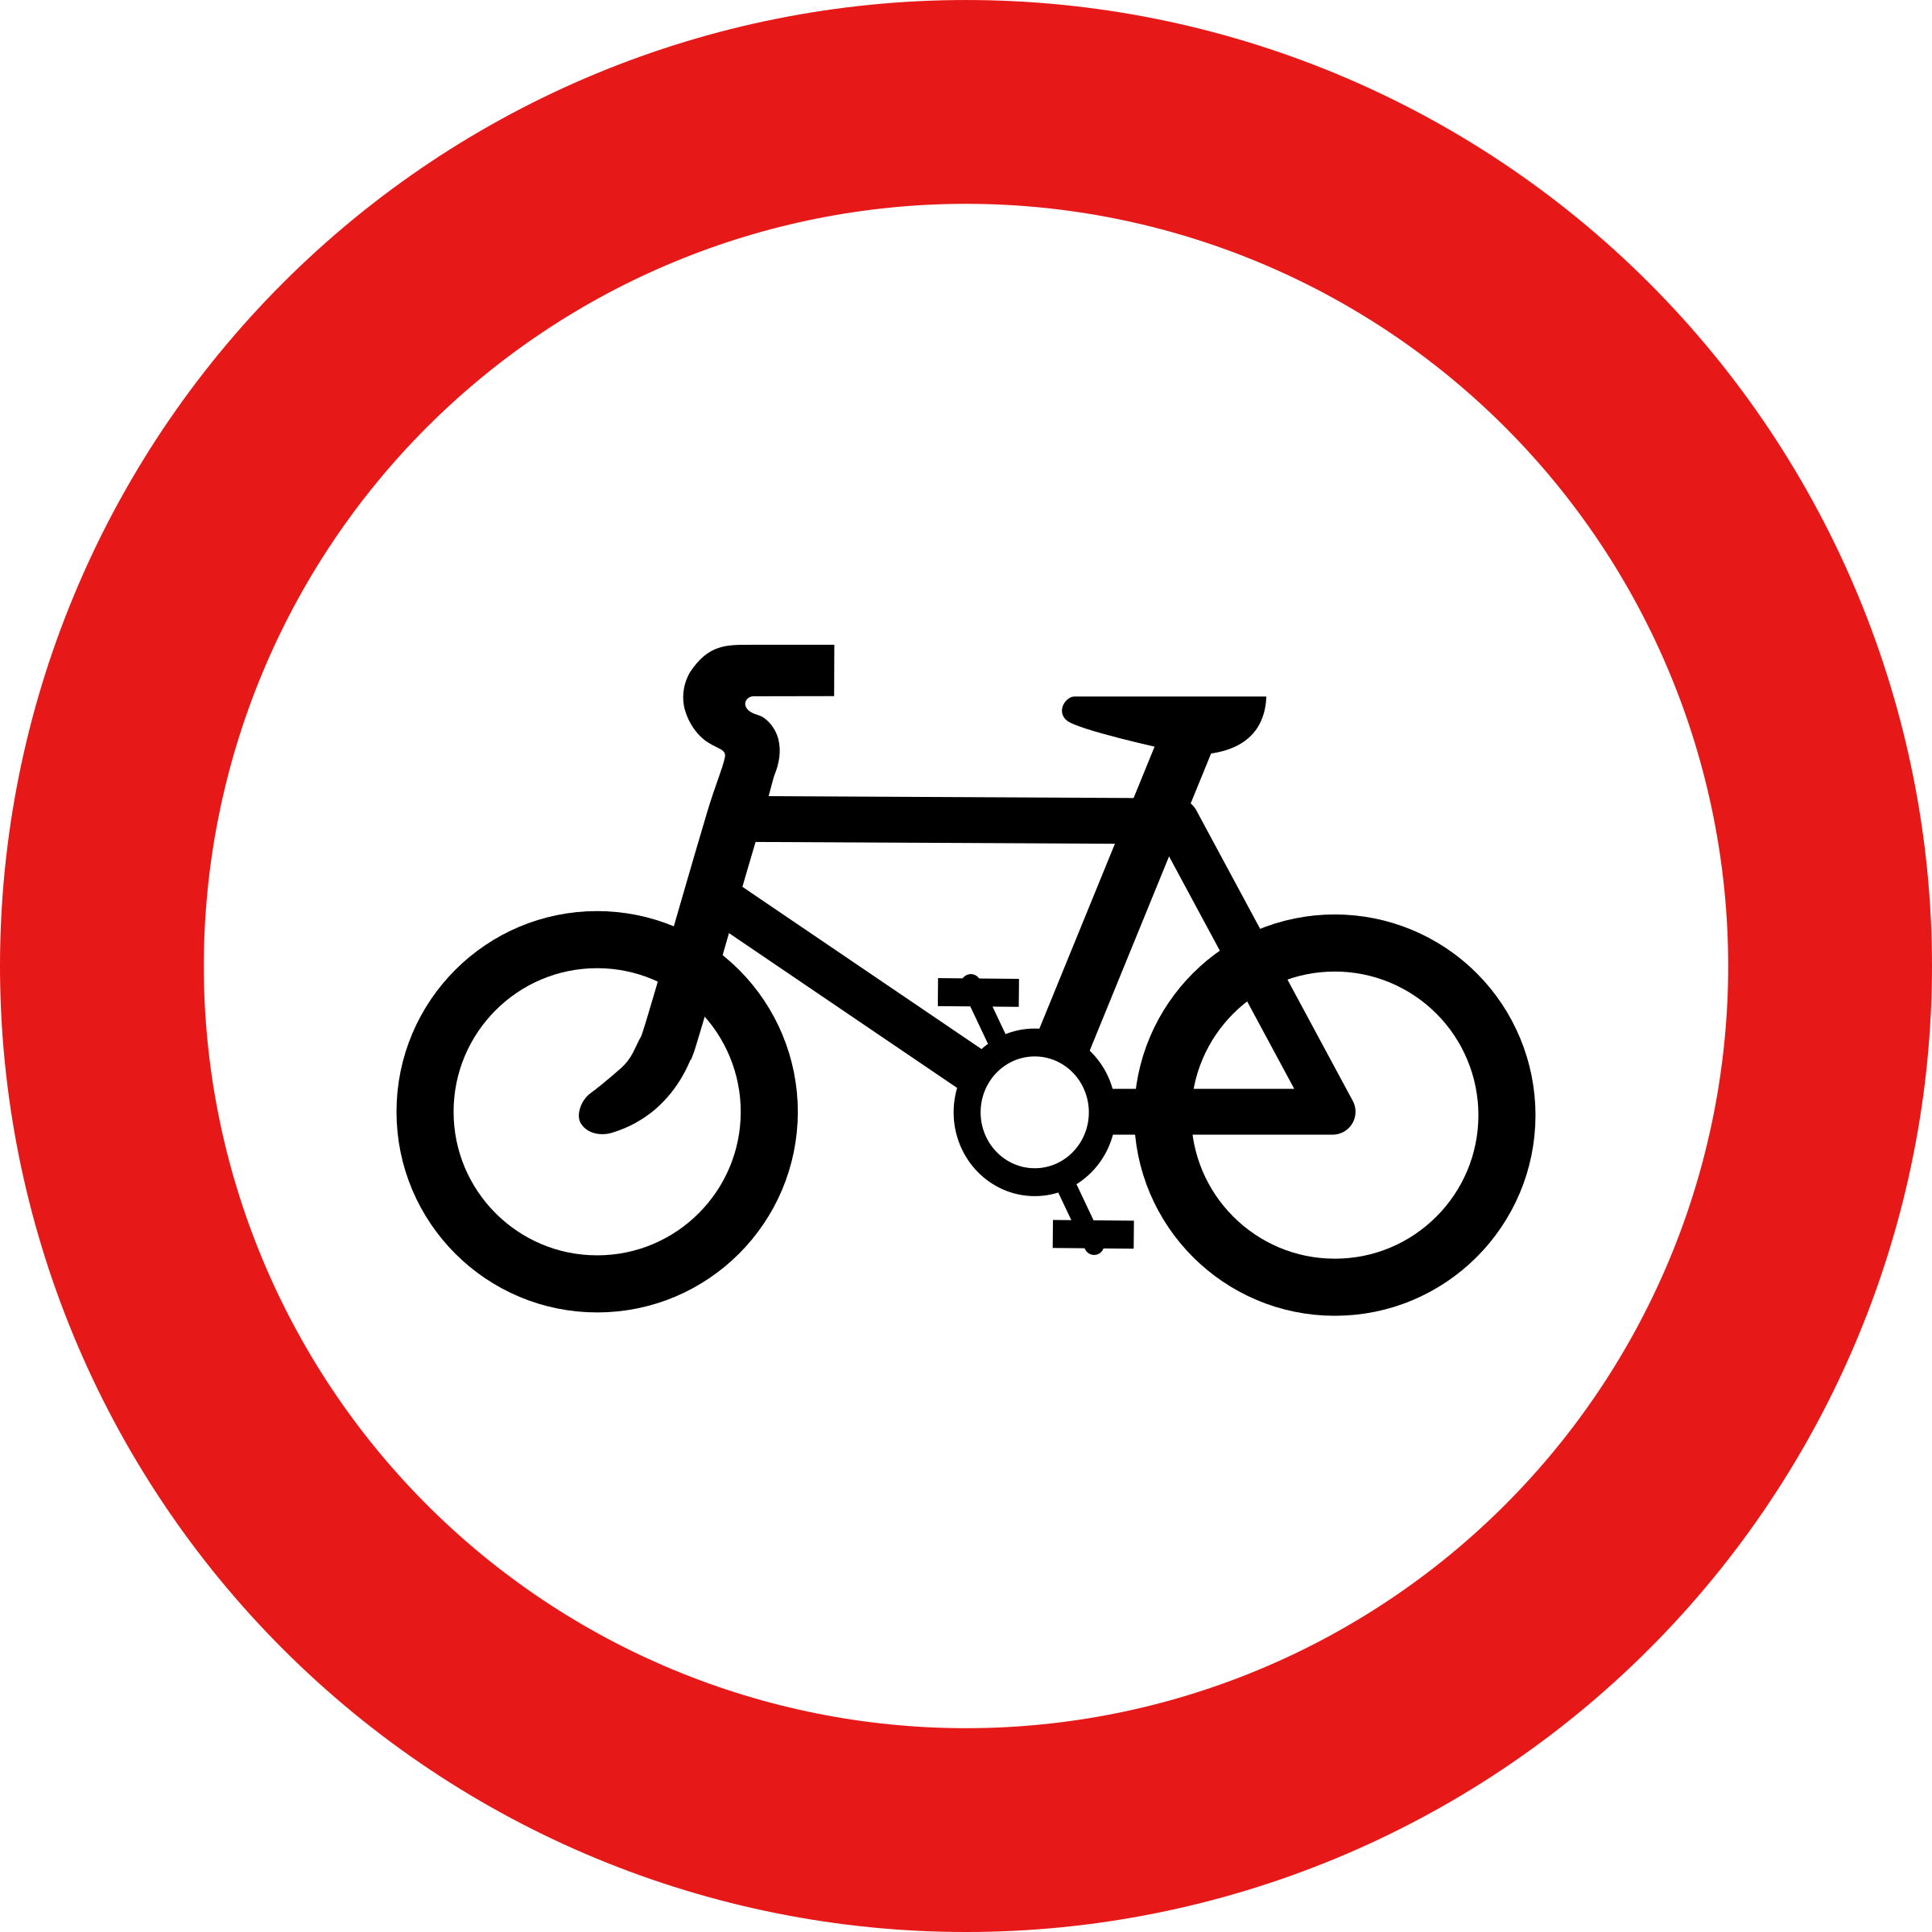 Roadsign no cycles by Simarilius